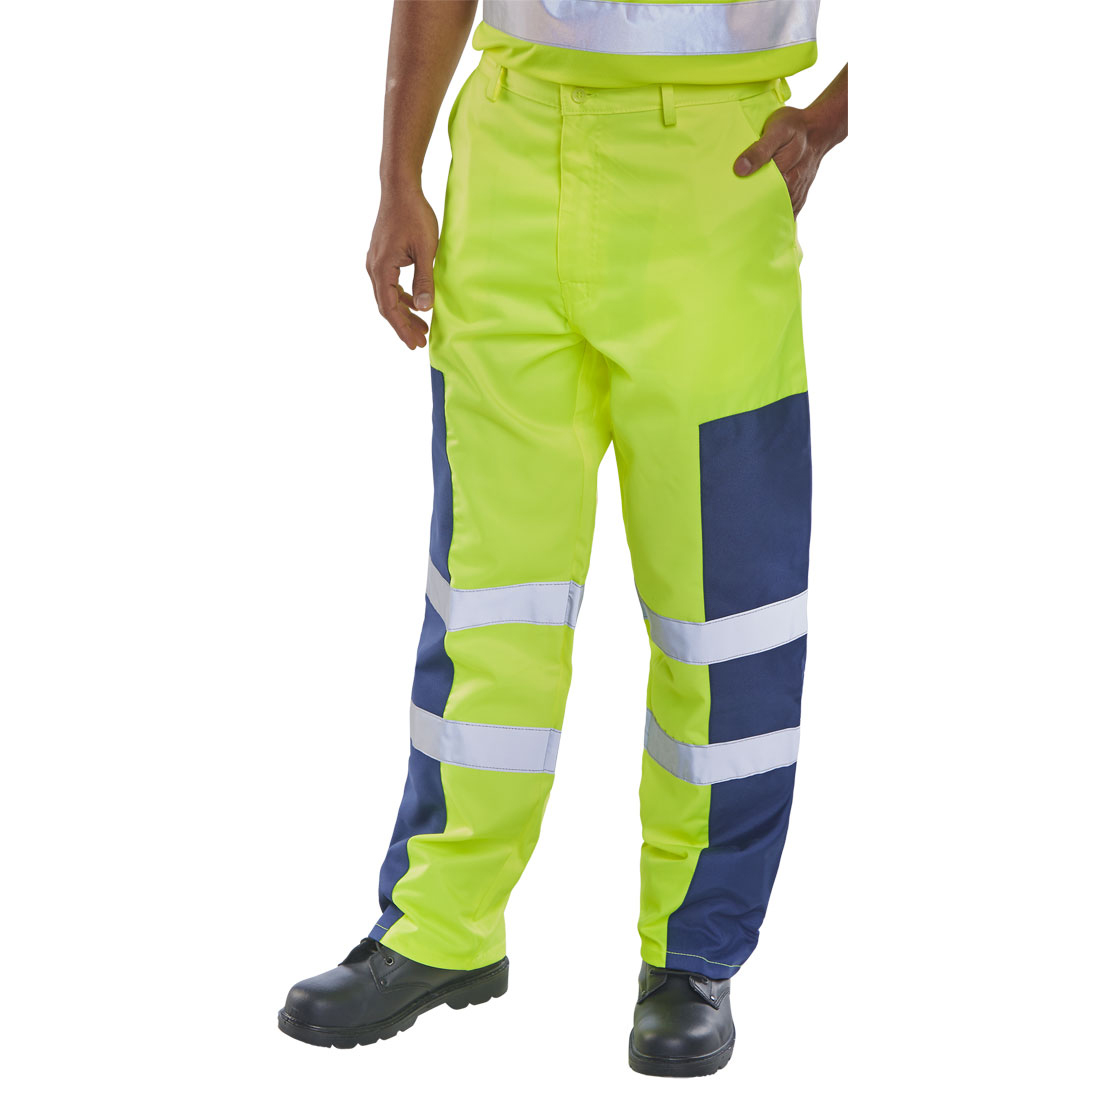 Click Workwear Trousers Hi-Vis Nylon Patch Yellow/Navy 30 Long Ref PCTSYNNP30T *Up to 3 Day Leadtime*